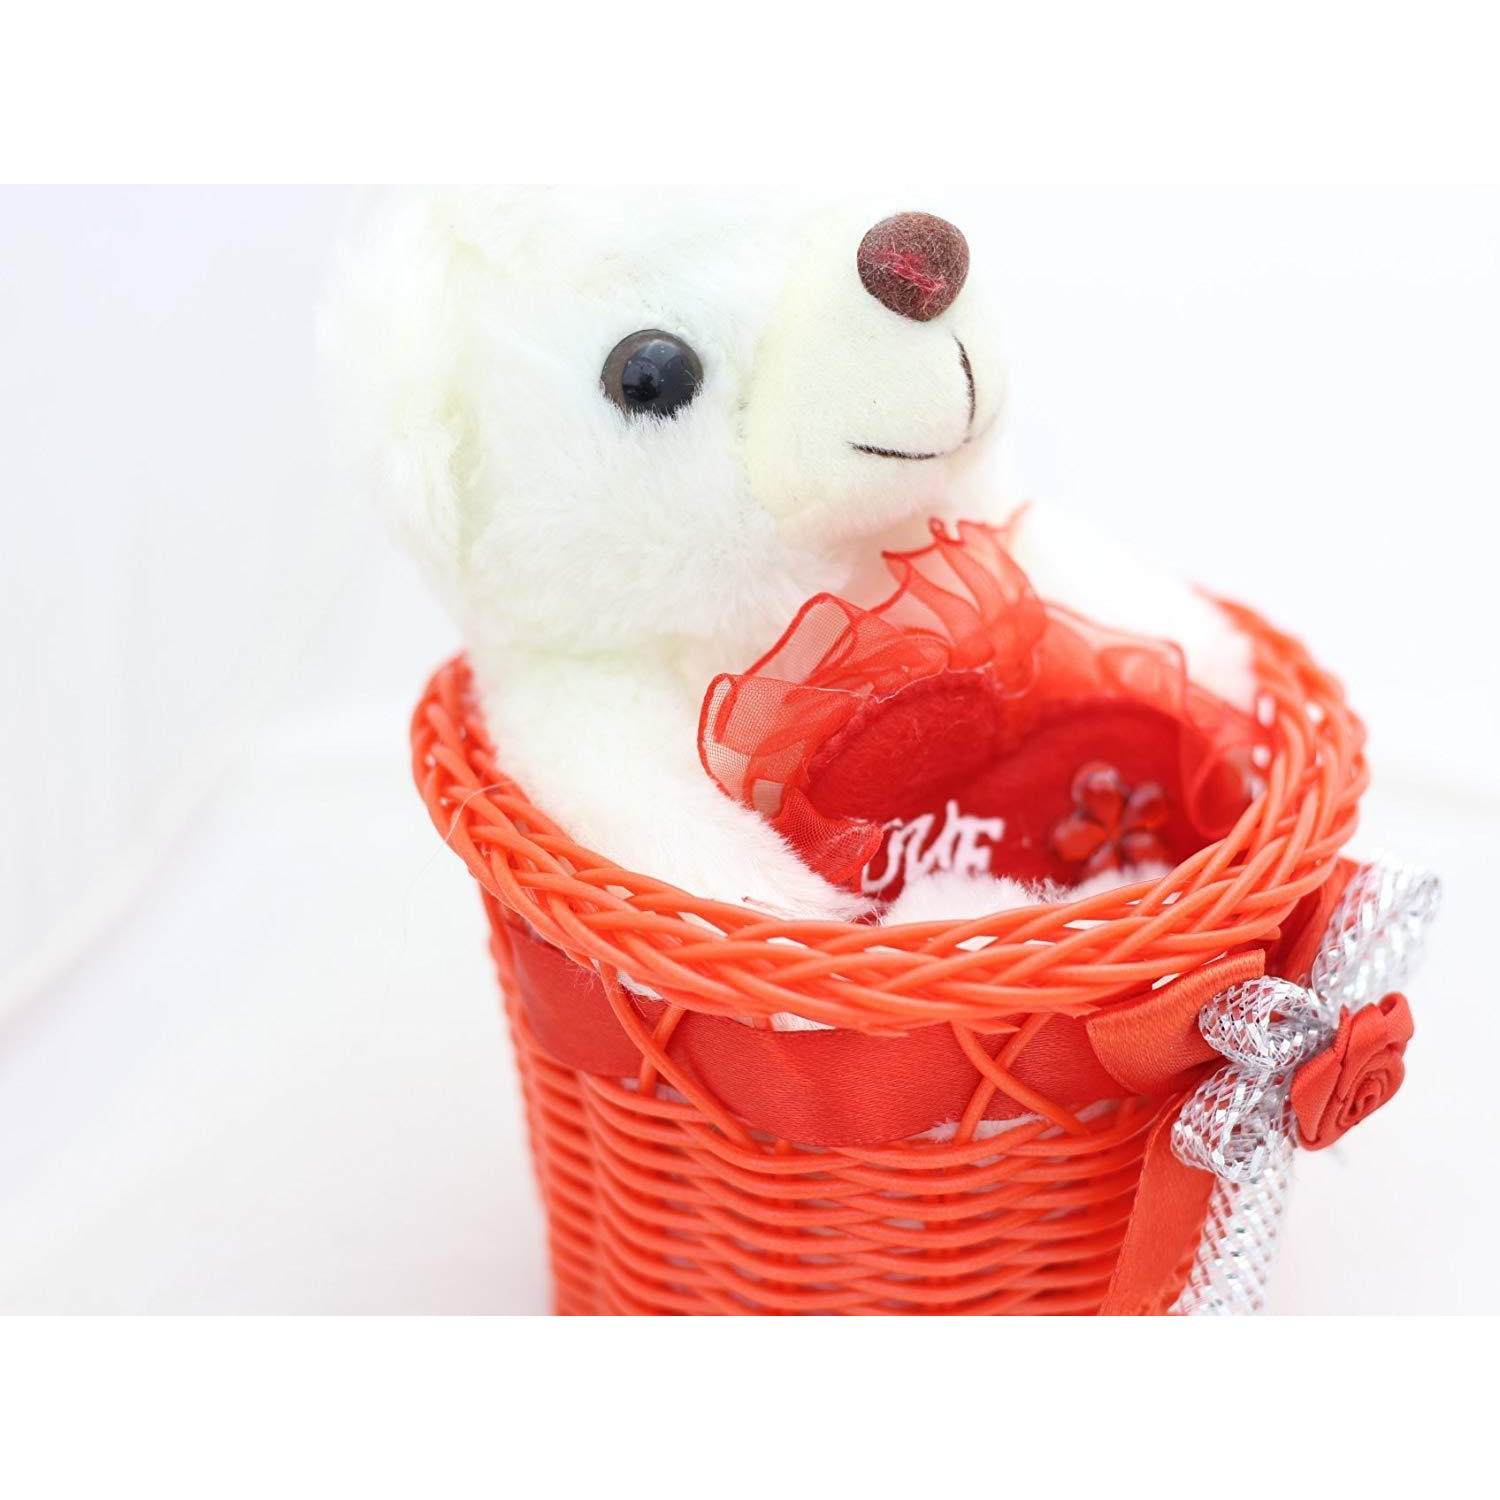 New Luxury Basket Teddy Holding Love Heart With Light & Music | Gifts For Birthday Anniversary | Him, Her, Girlfriend And Boyfriend Best Home Decor Showpiece Figurine